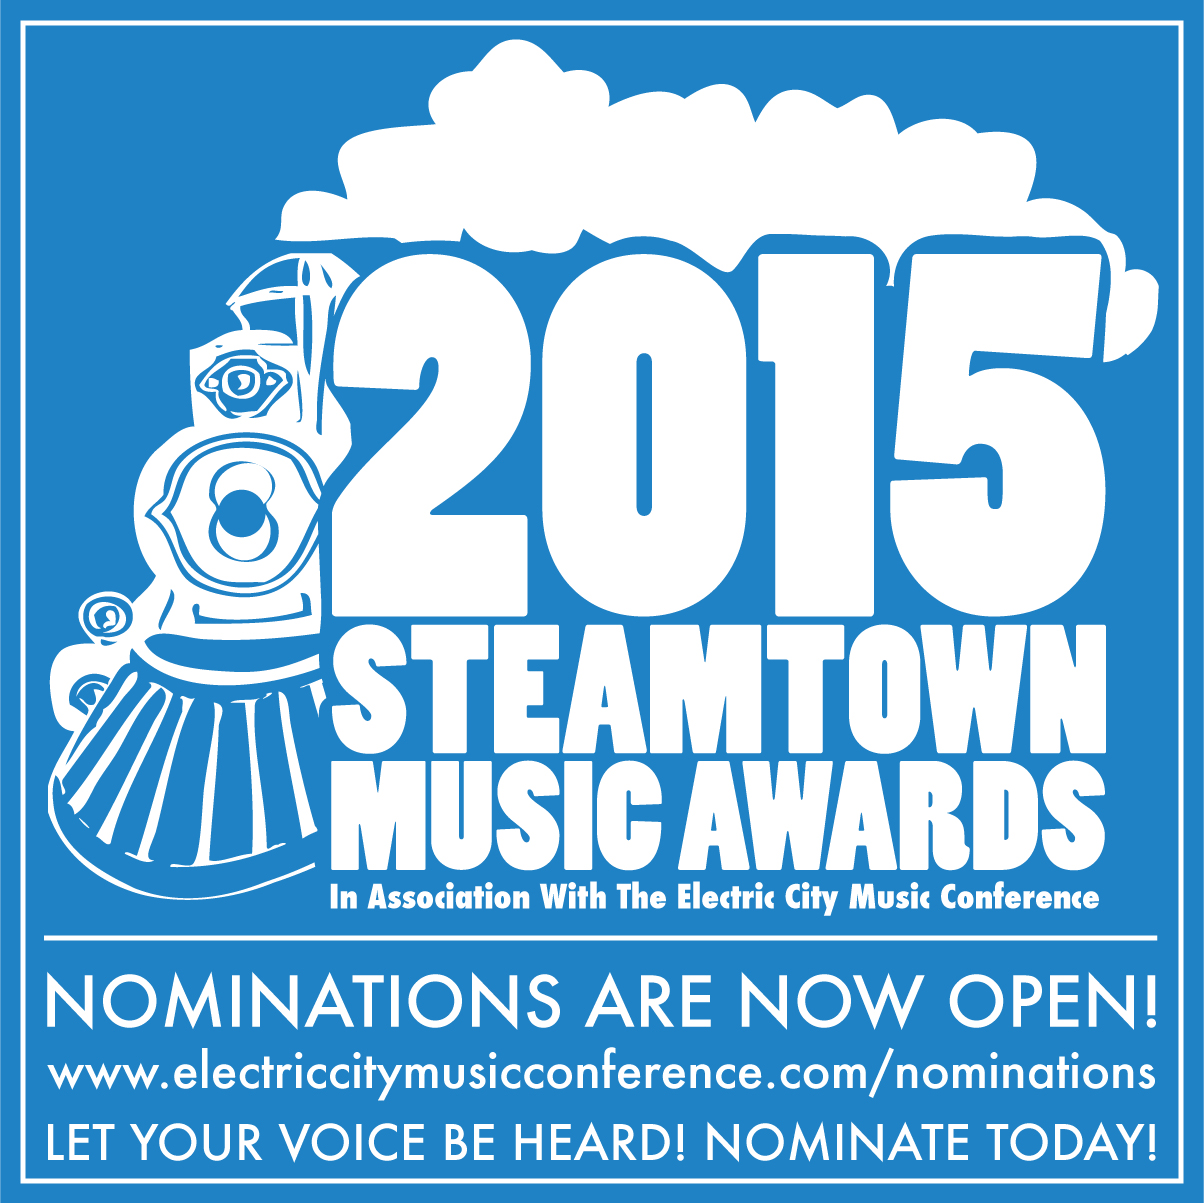 STEAMTOWN MUSIC AWARDS 2015 OPENS NOMINATIONS